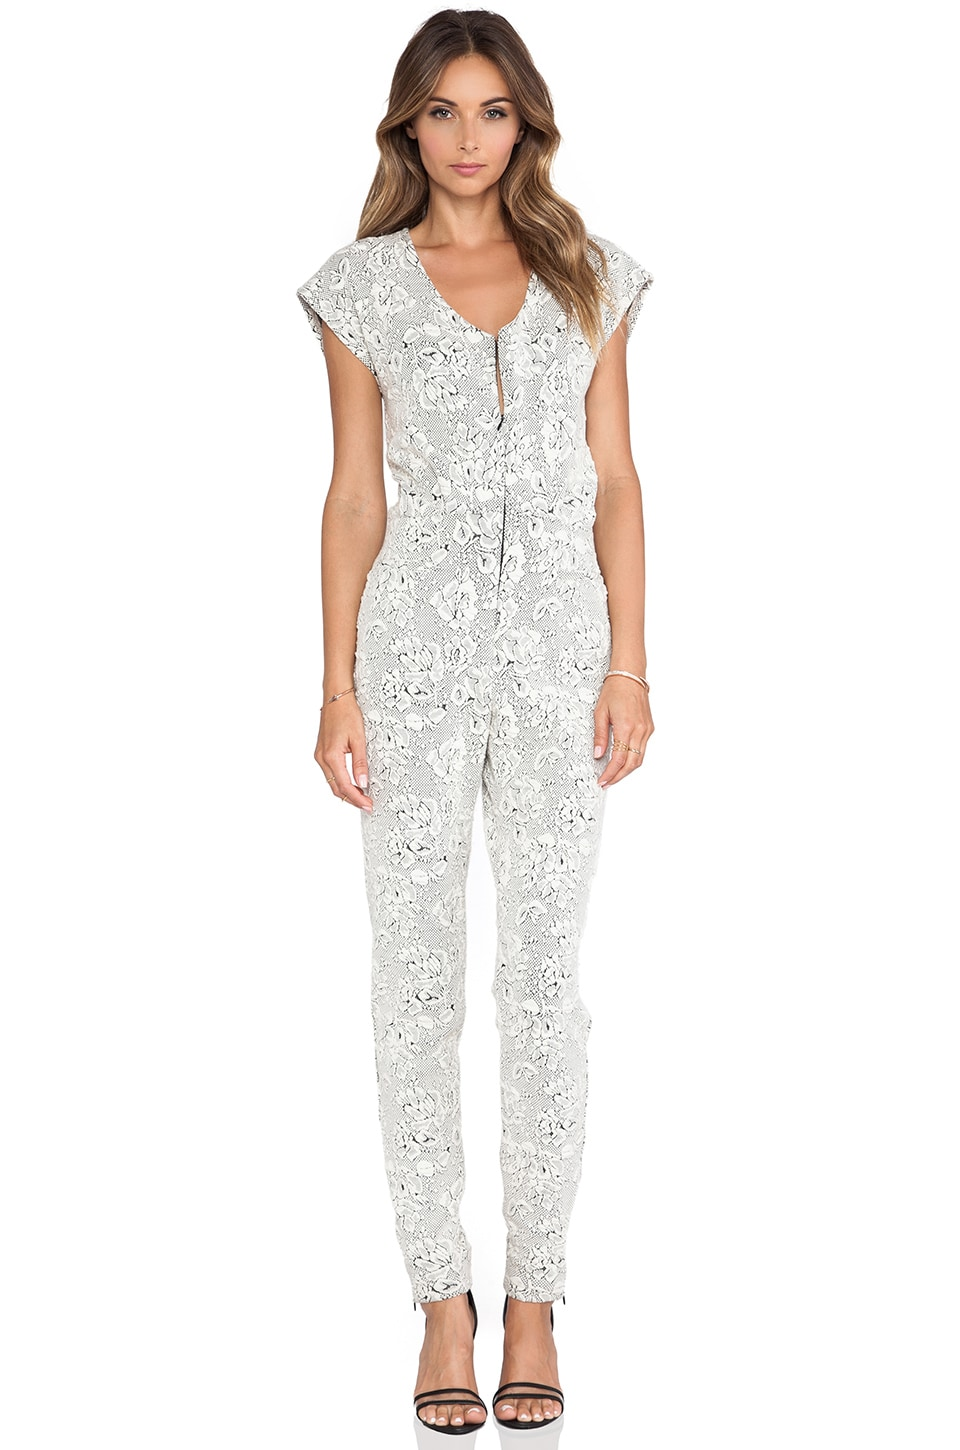 Hunter Bell Justine Jumpsuit in White Floral